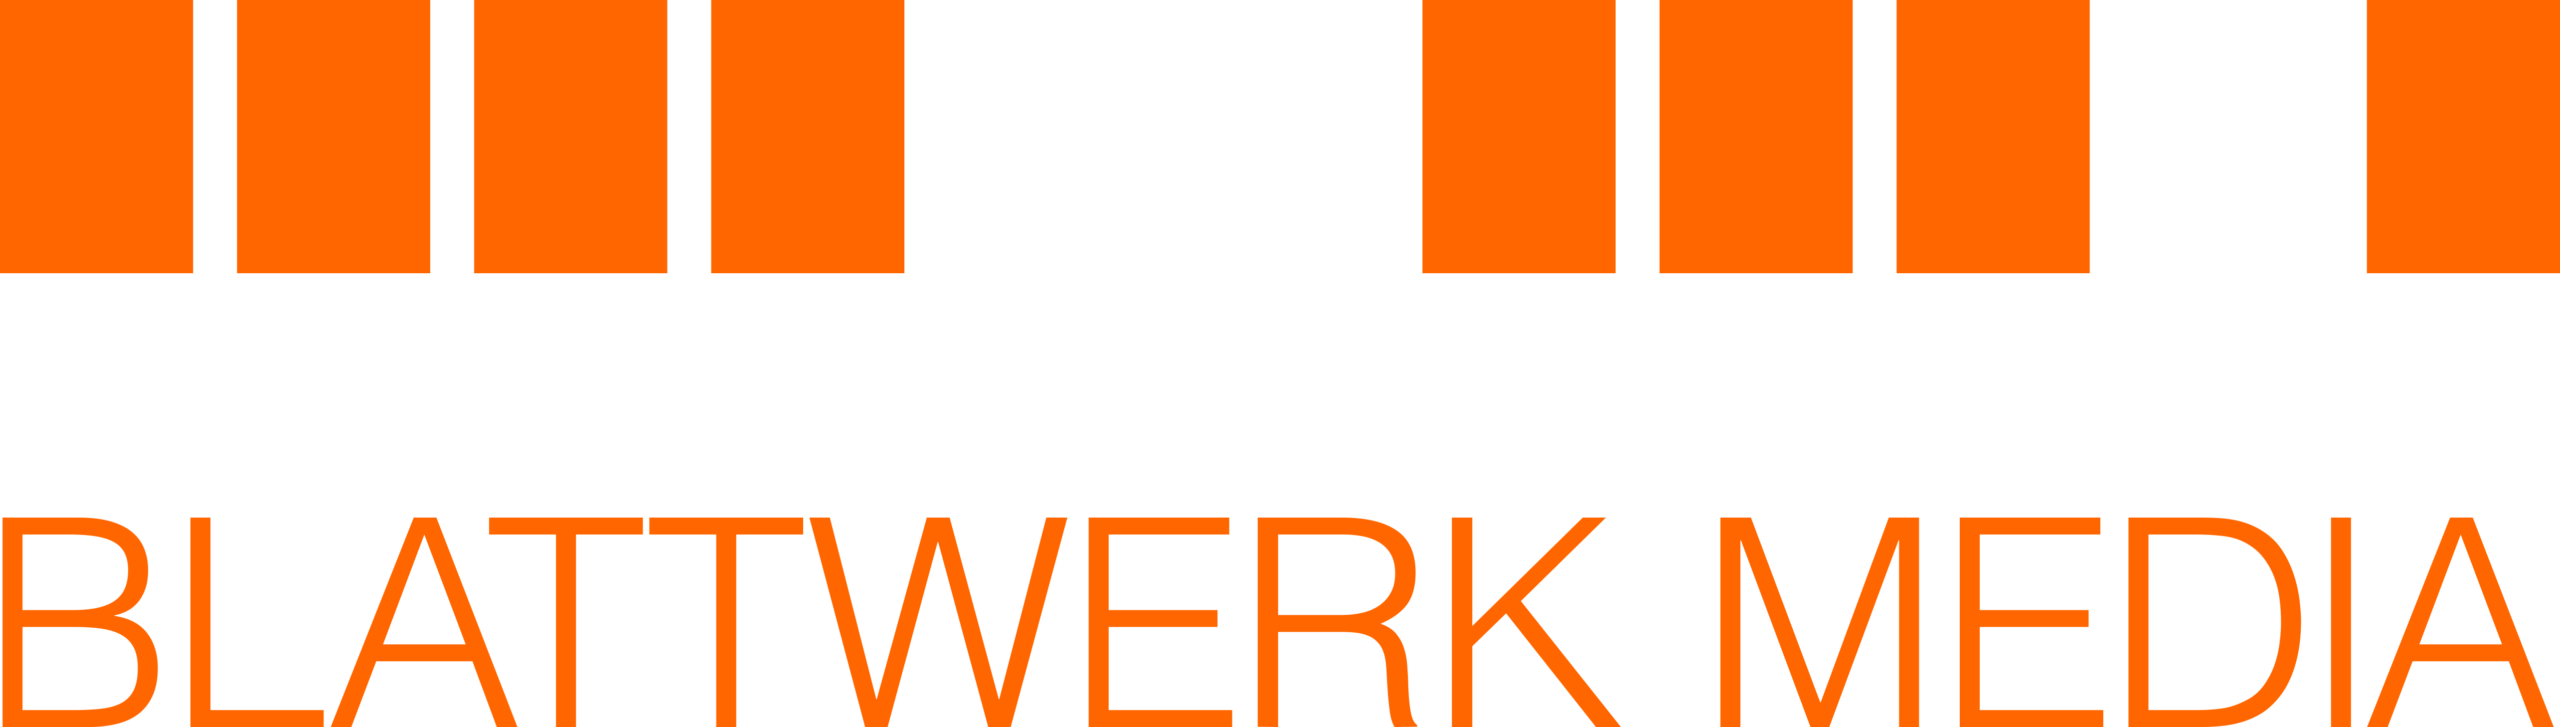 Blattwerk Media Logo Orange